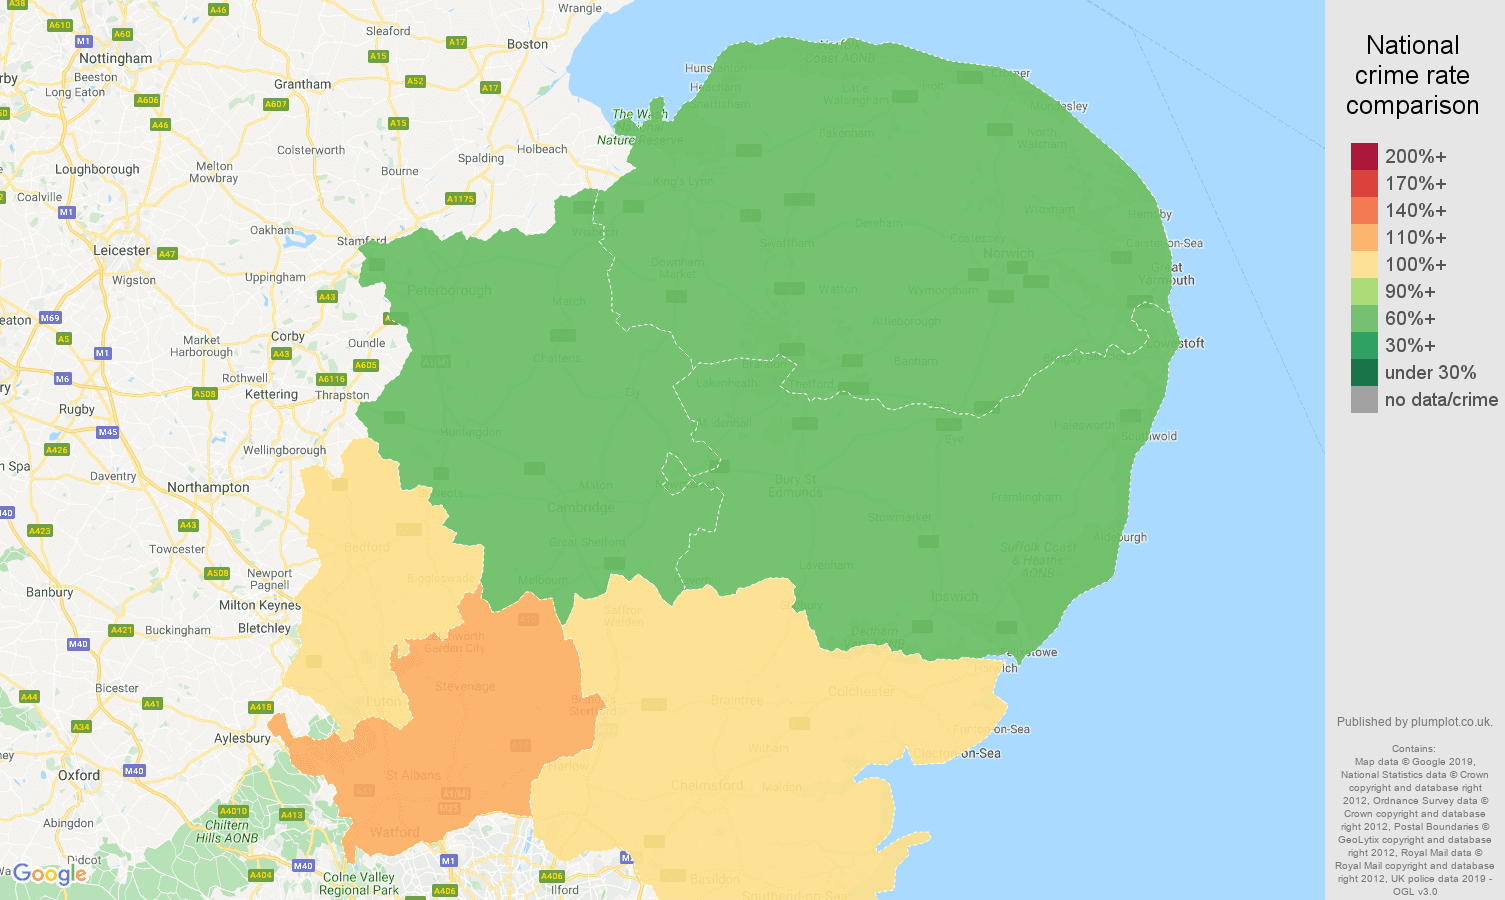 East of England shoplifting crime rate comparison map